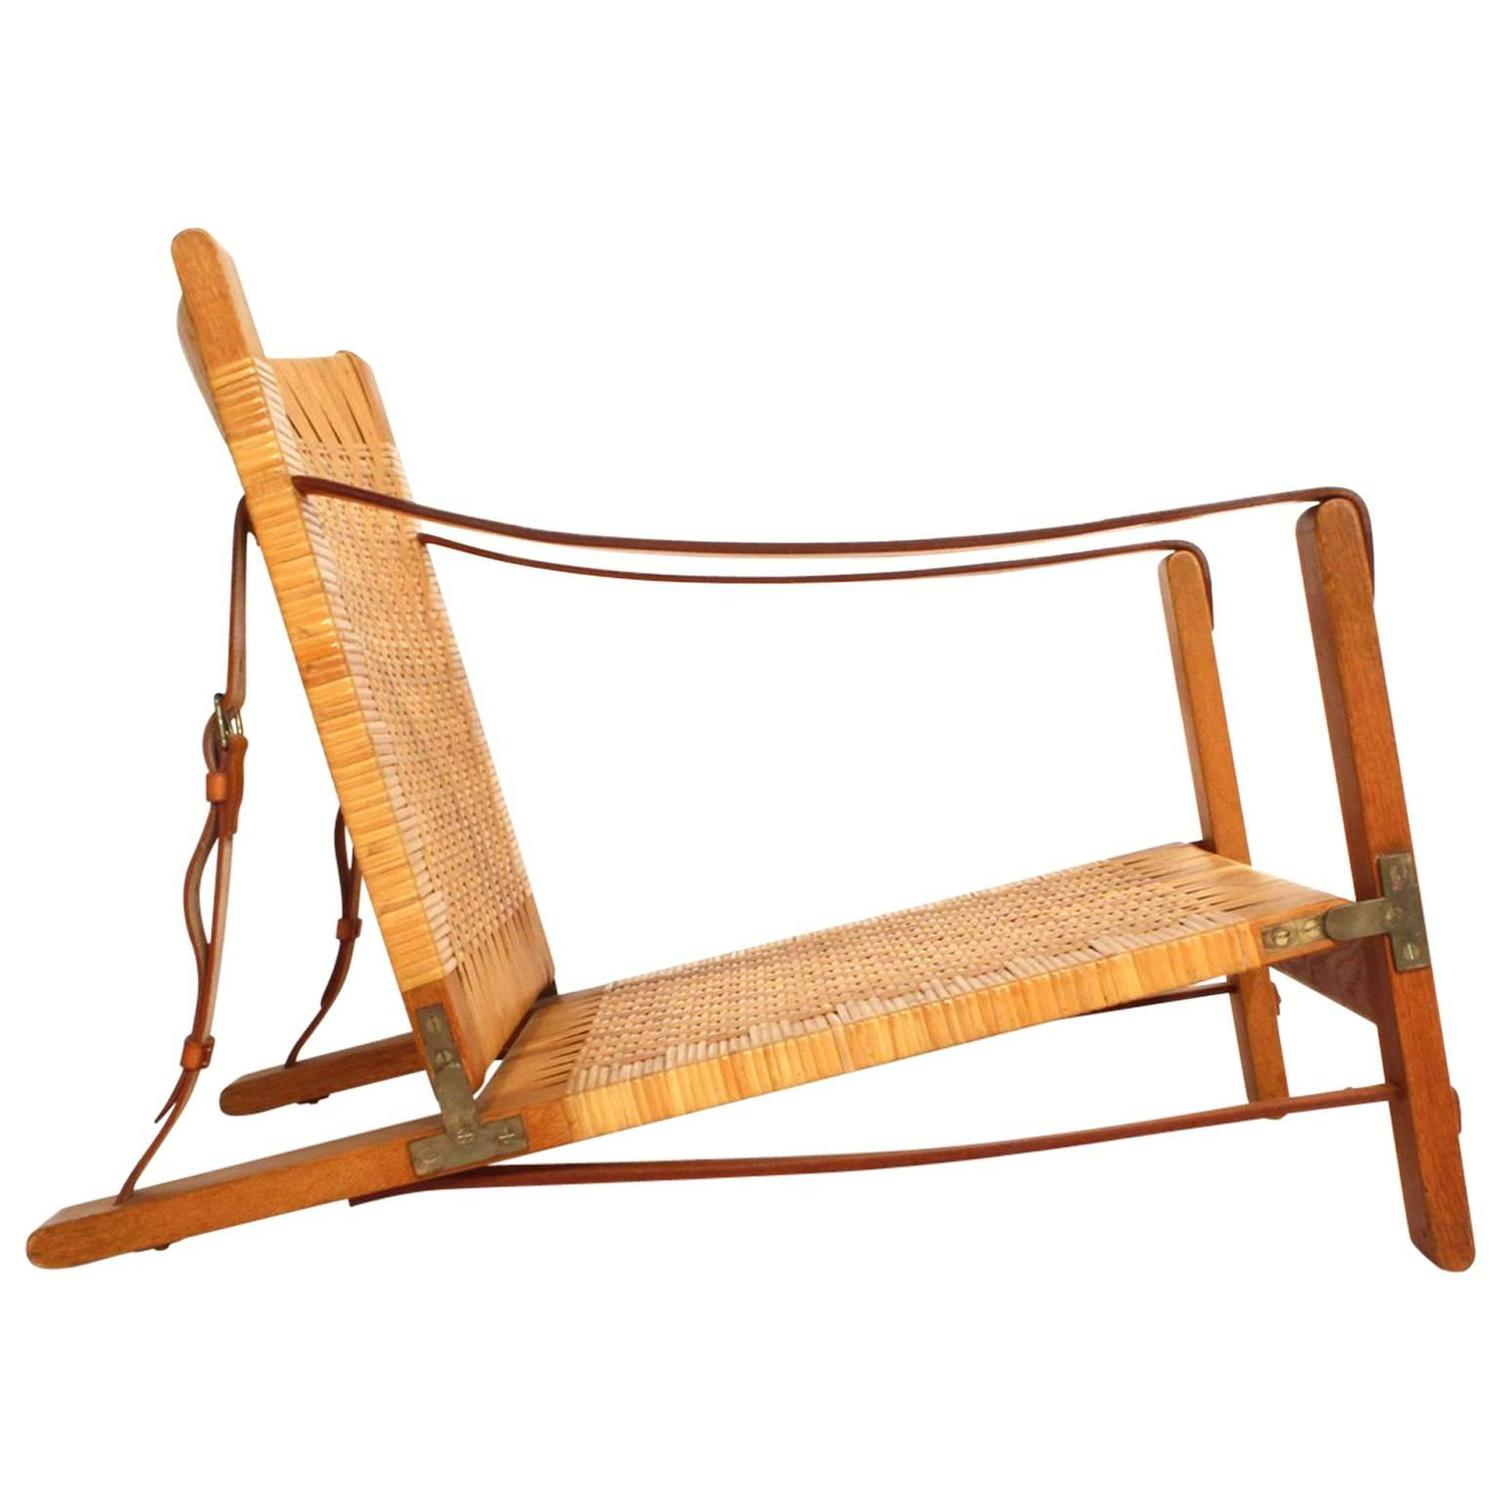 Extremely Rare B¸rge Mogensen Hunting Chair by Cabinetmaker Erhard